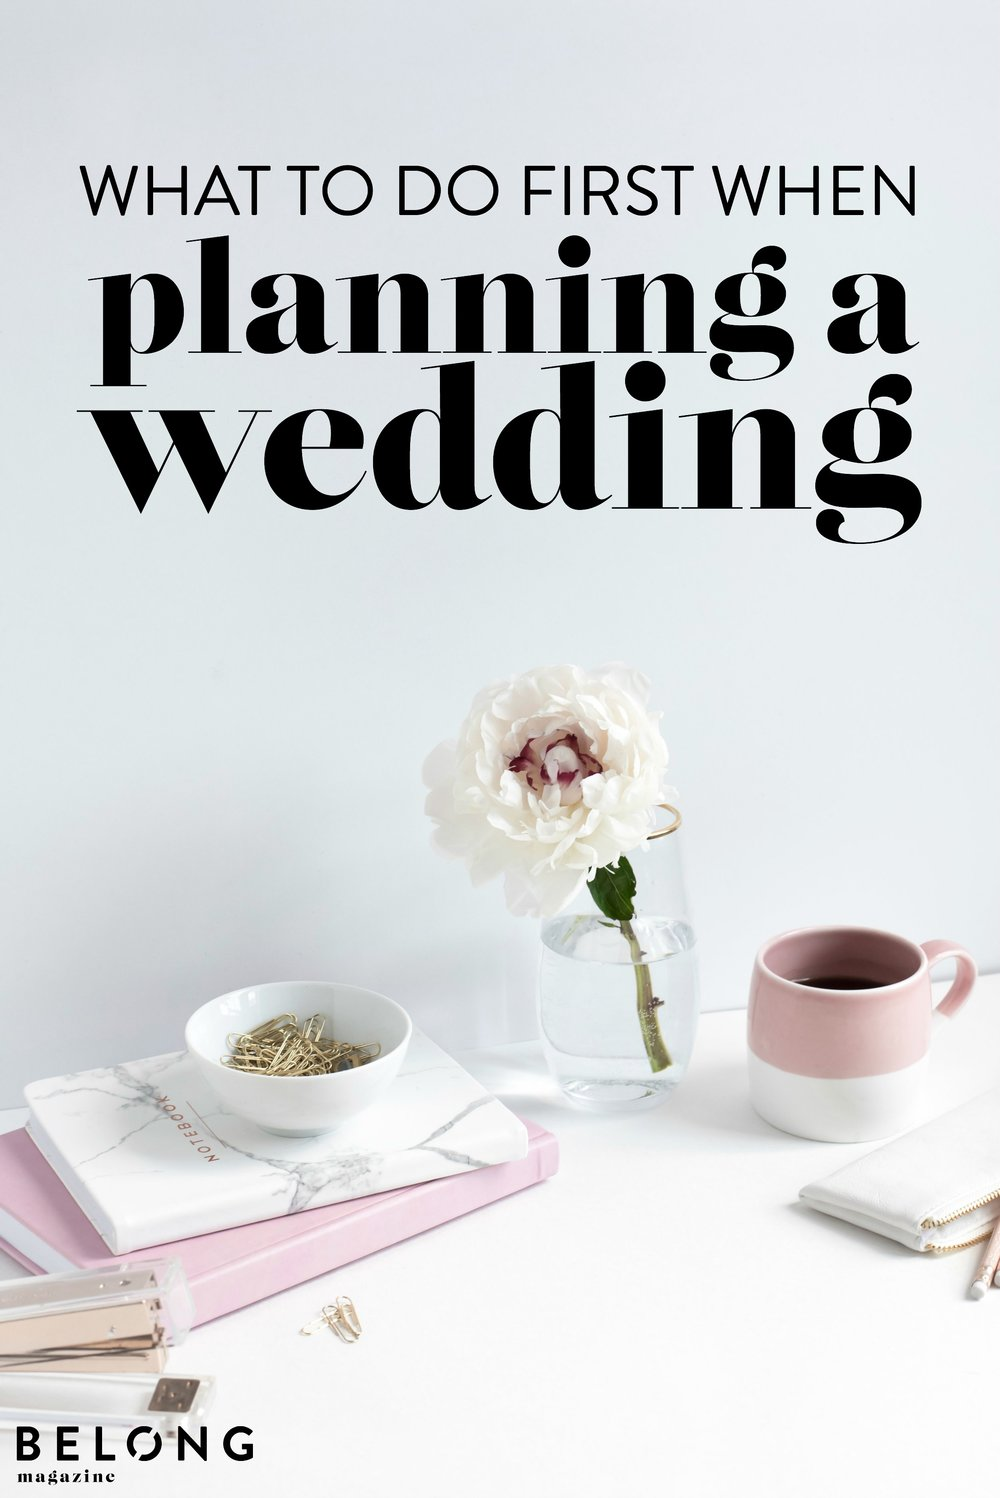 what to do first when planning a wedding by Jenna Whitecar as featured on the Belong Magazine blog